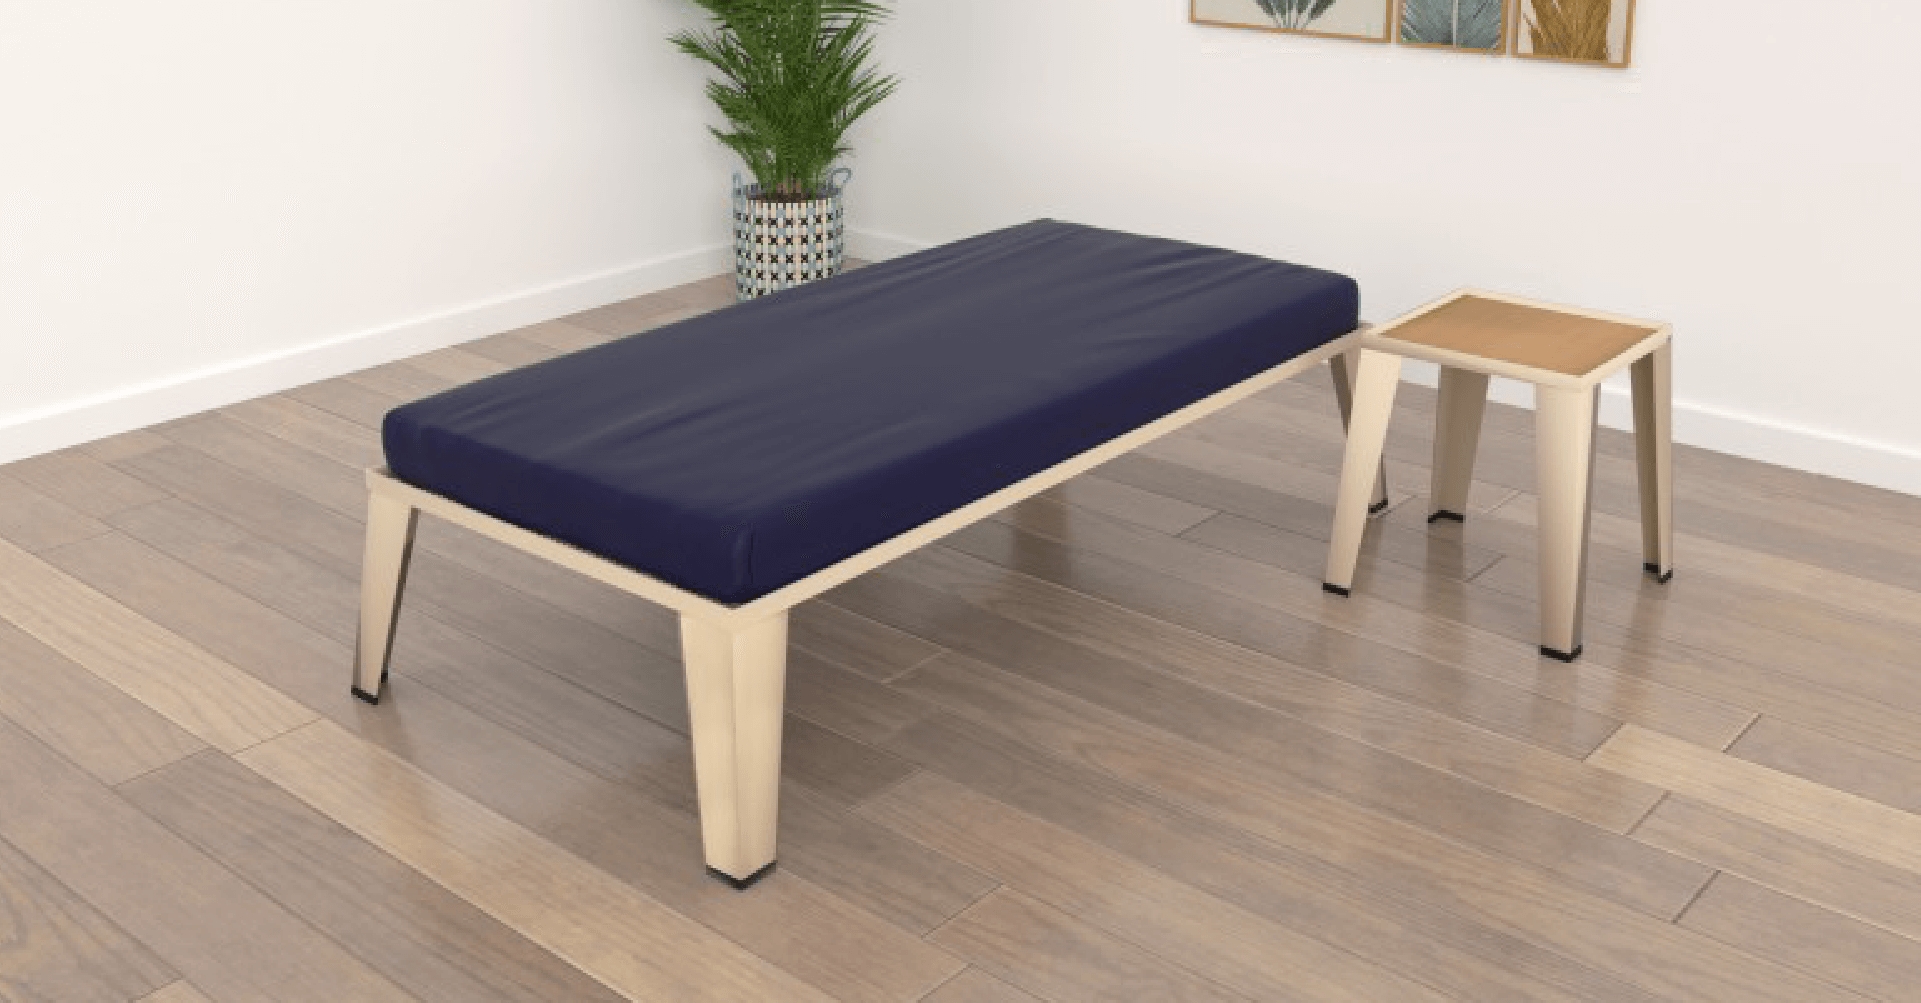 Central City Beds product Bed Frame